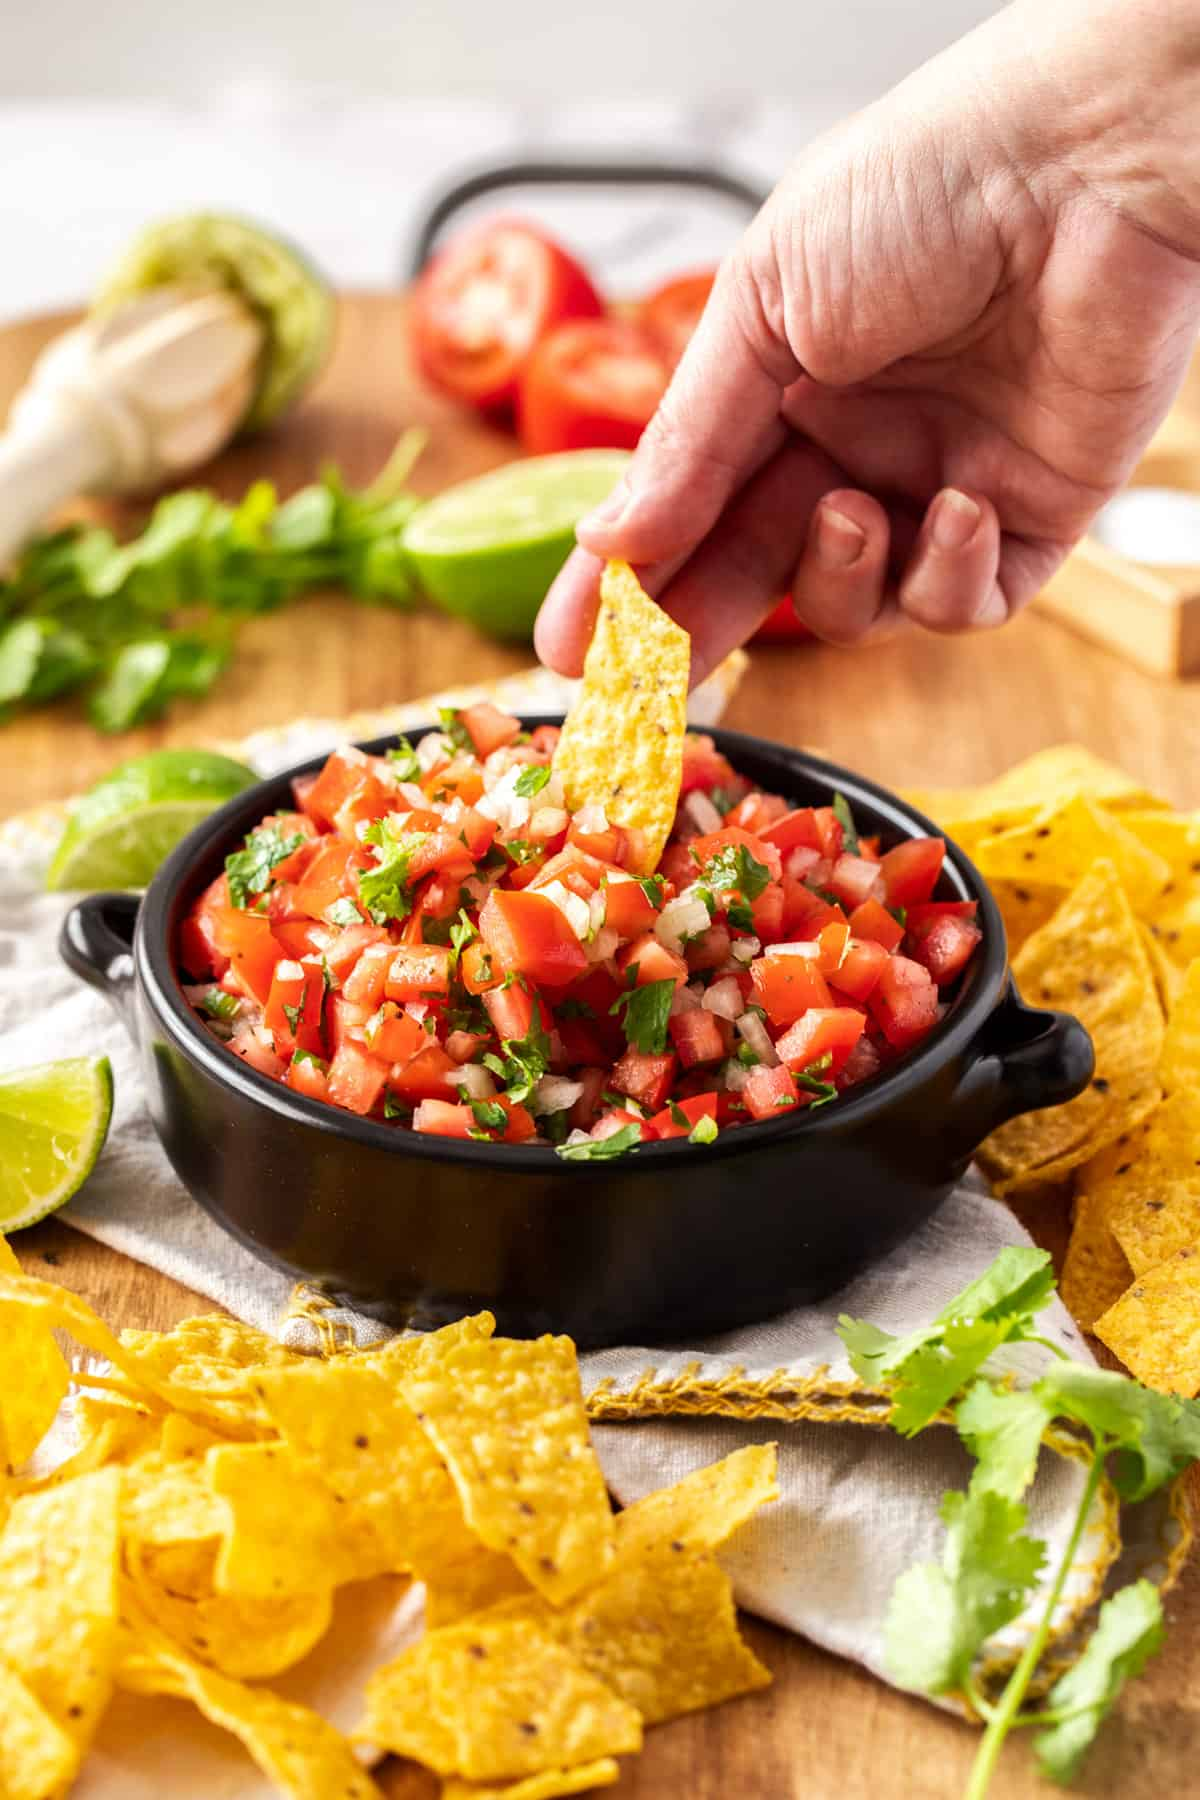 chip dipped in a bowl of pico de gallo surrounded by more ingredients